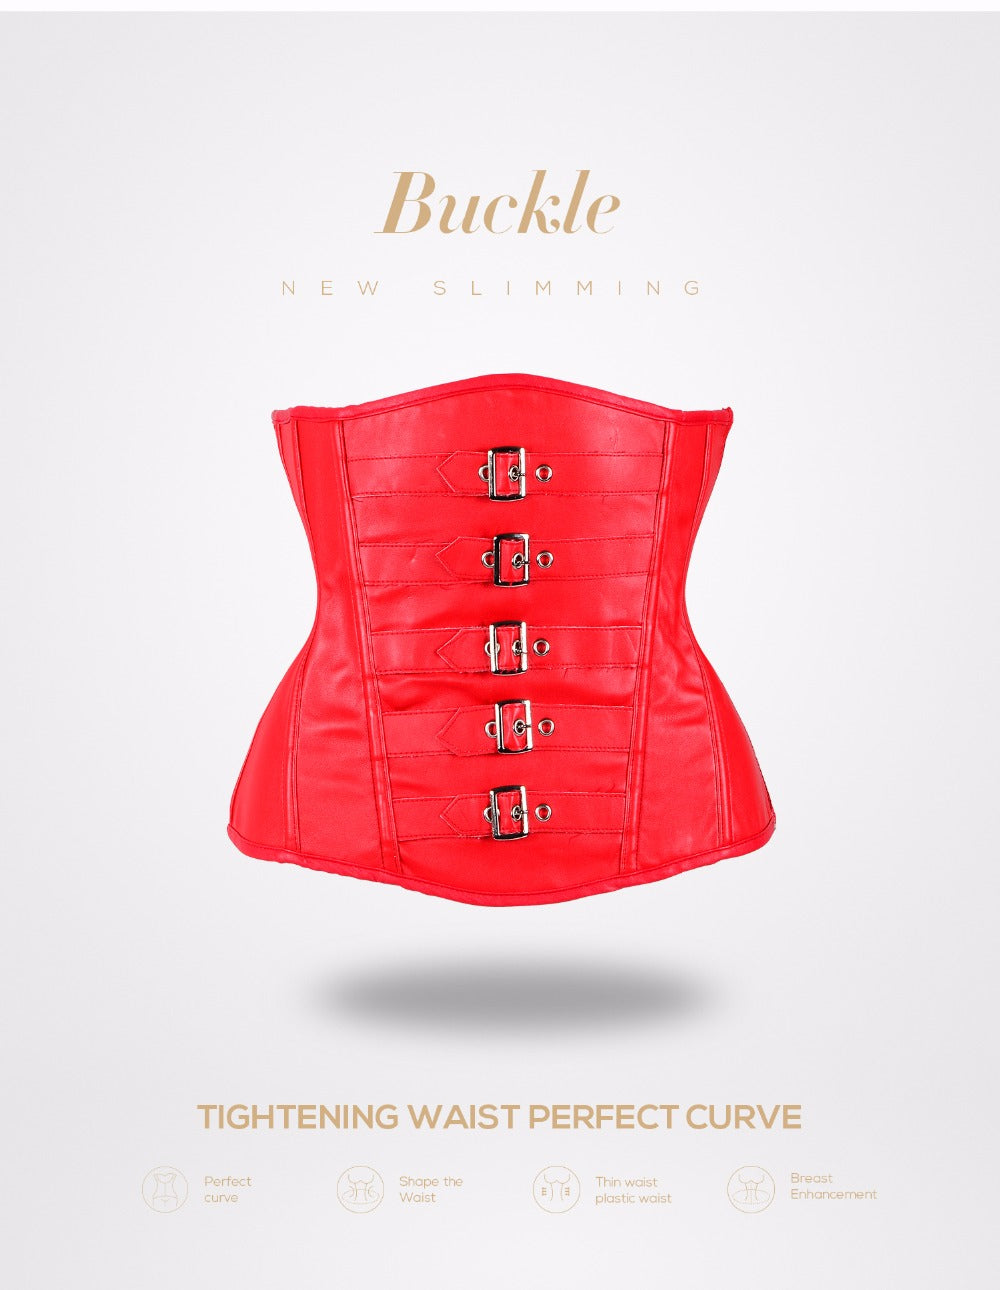 Body Shaper Waist Trainer Corset Leather Bustier Gothic Burlesque Slimming Body Shaper Bustier